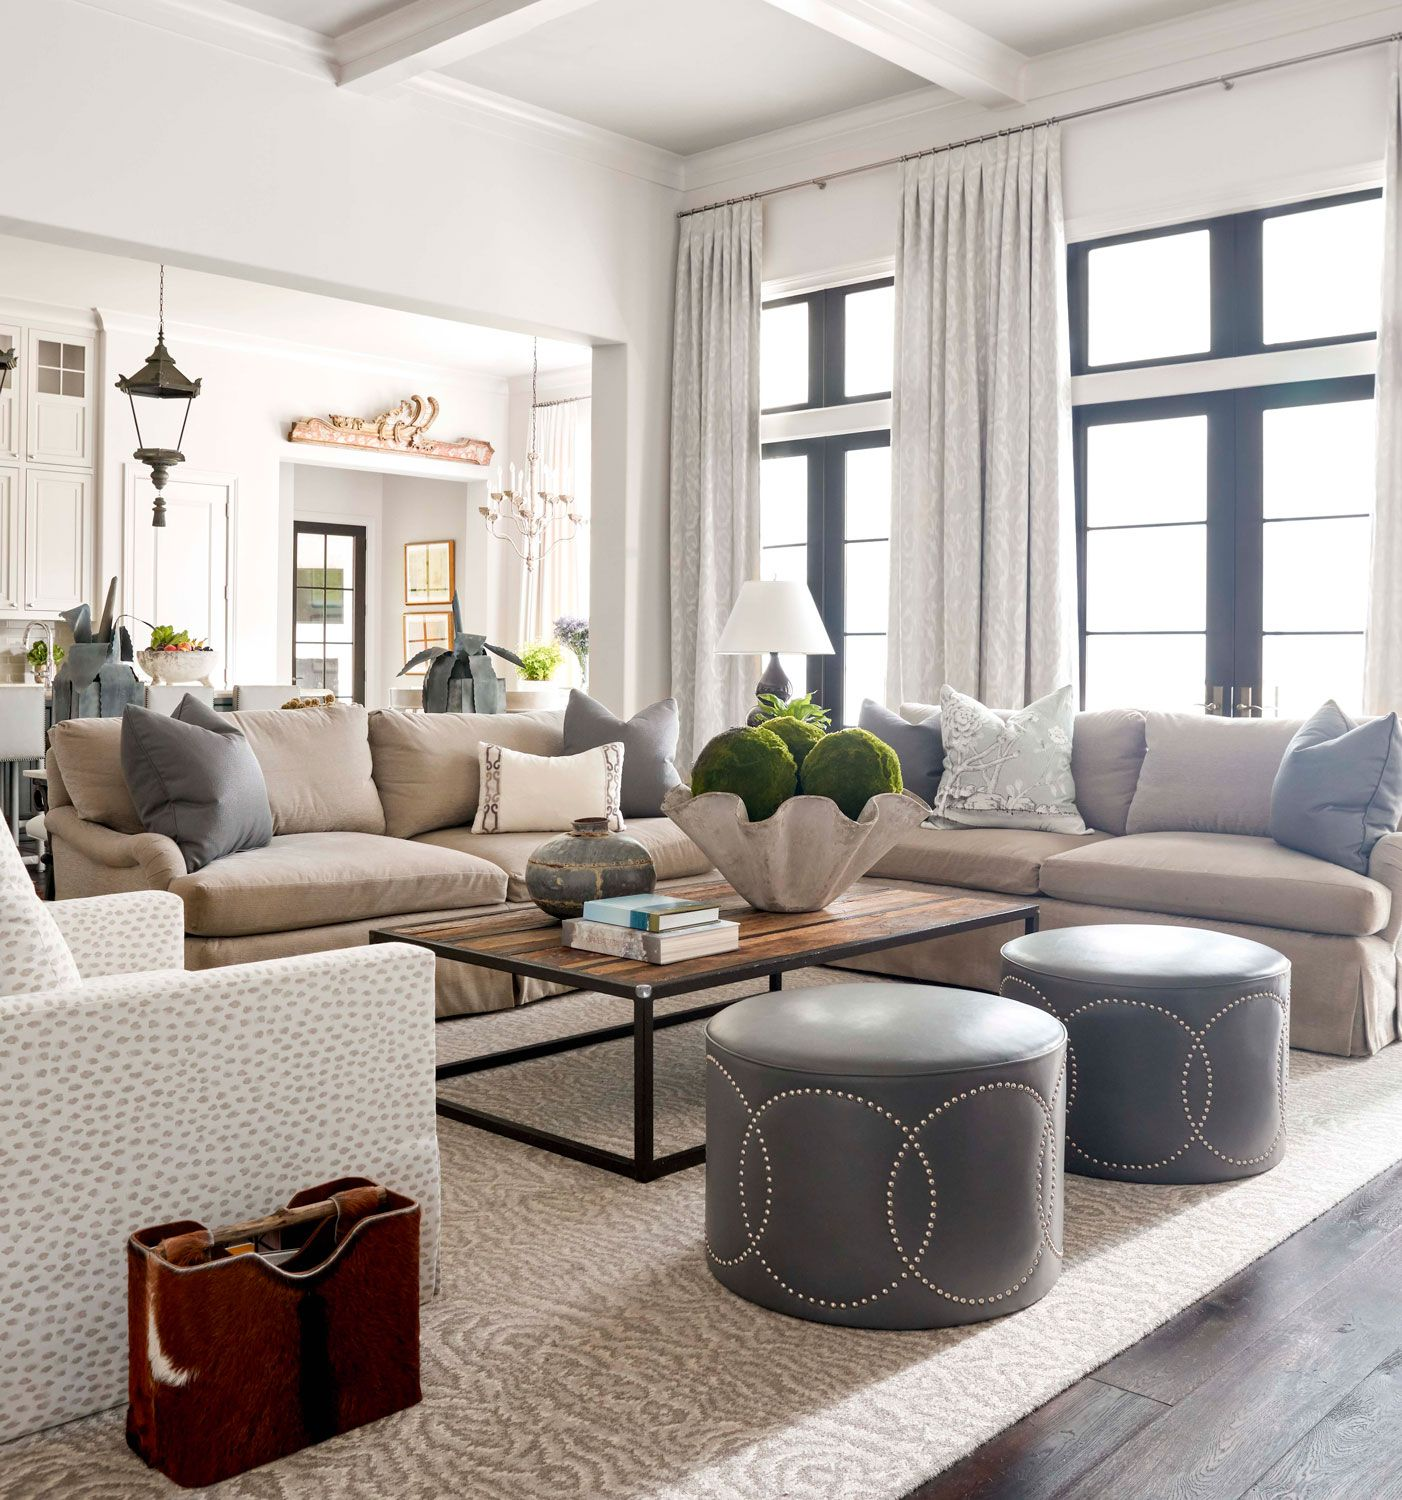 Living Room Sets Houston: Family Rooms & Living Rooms